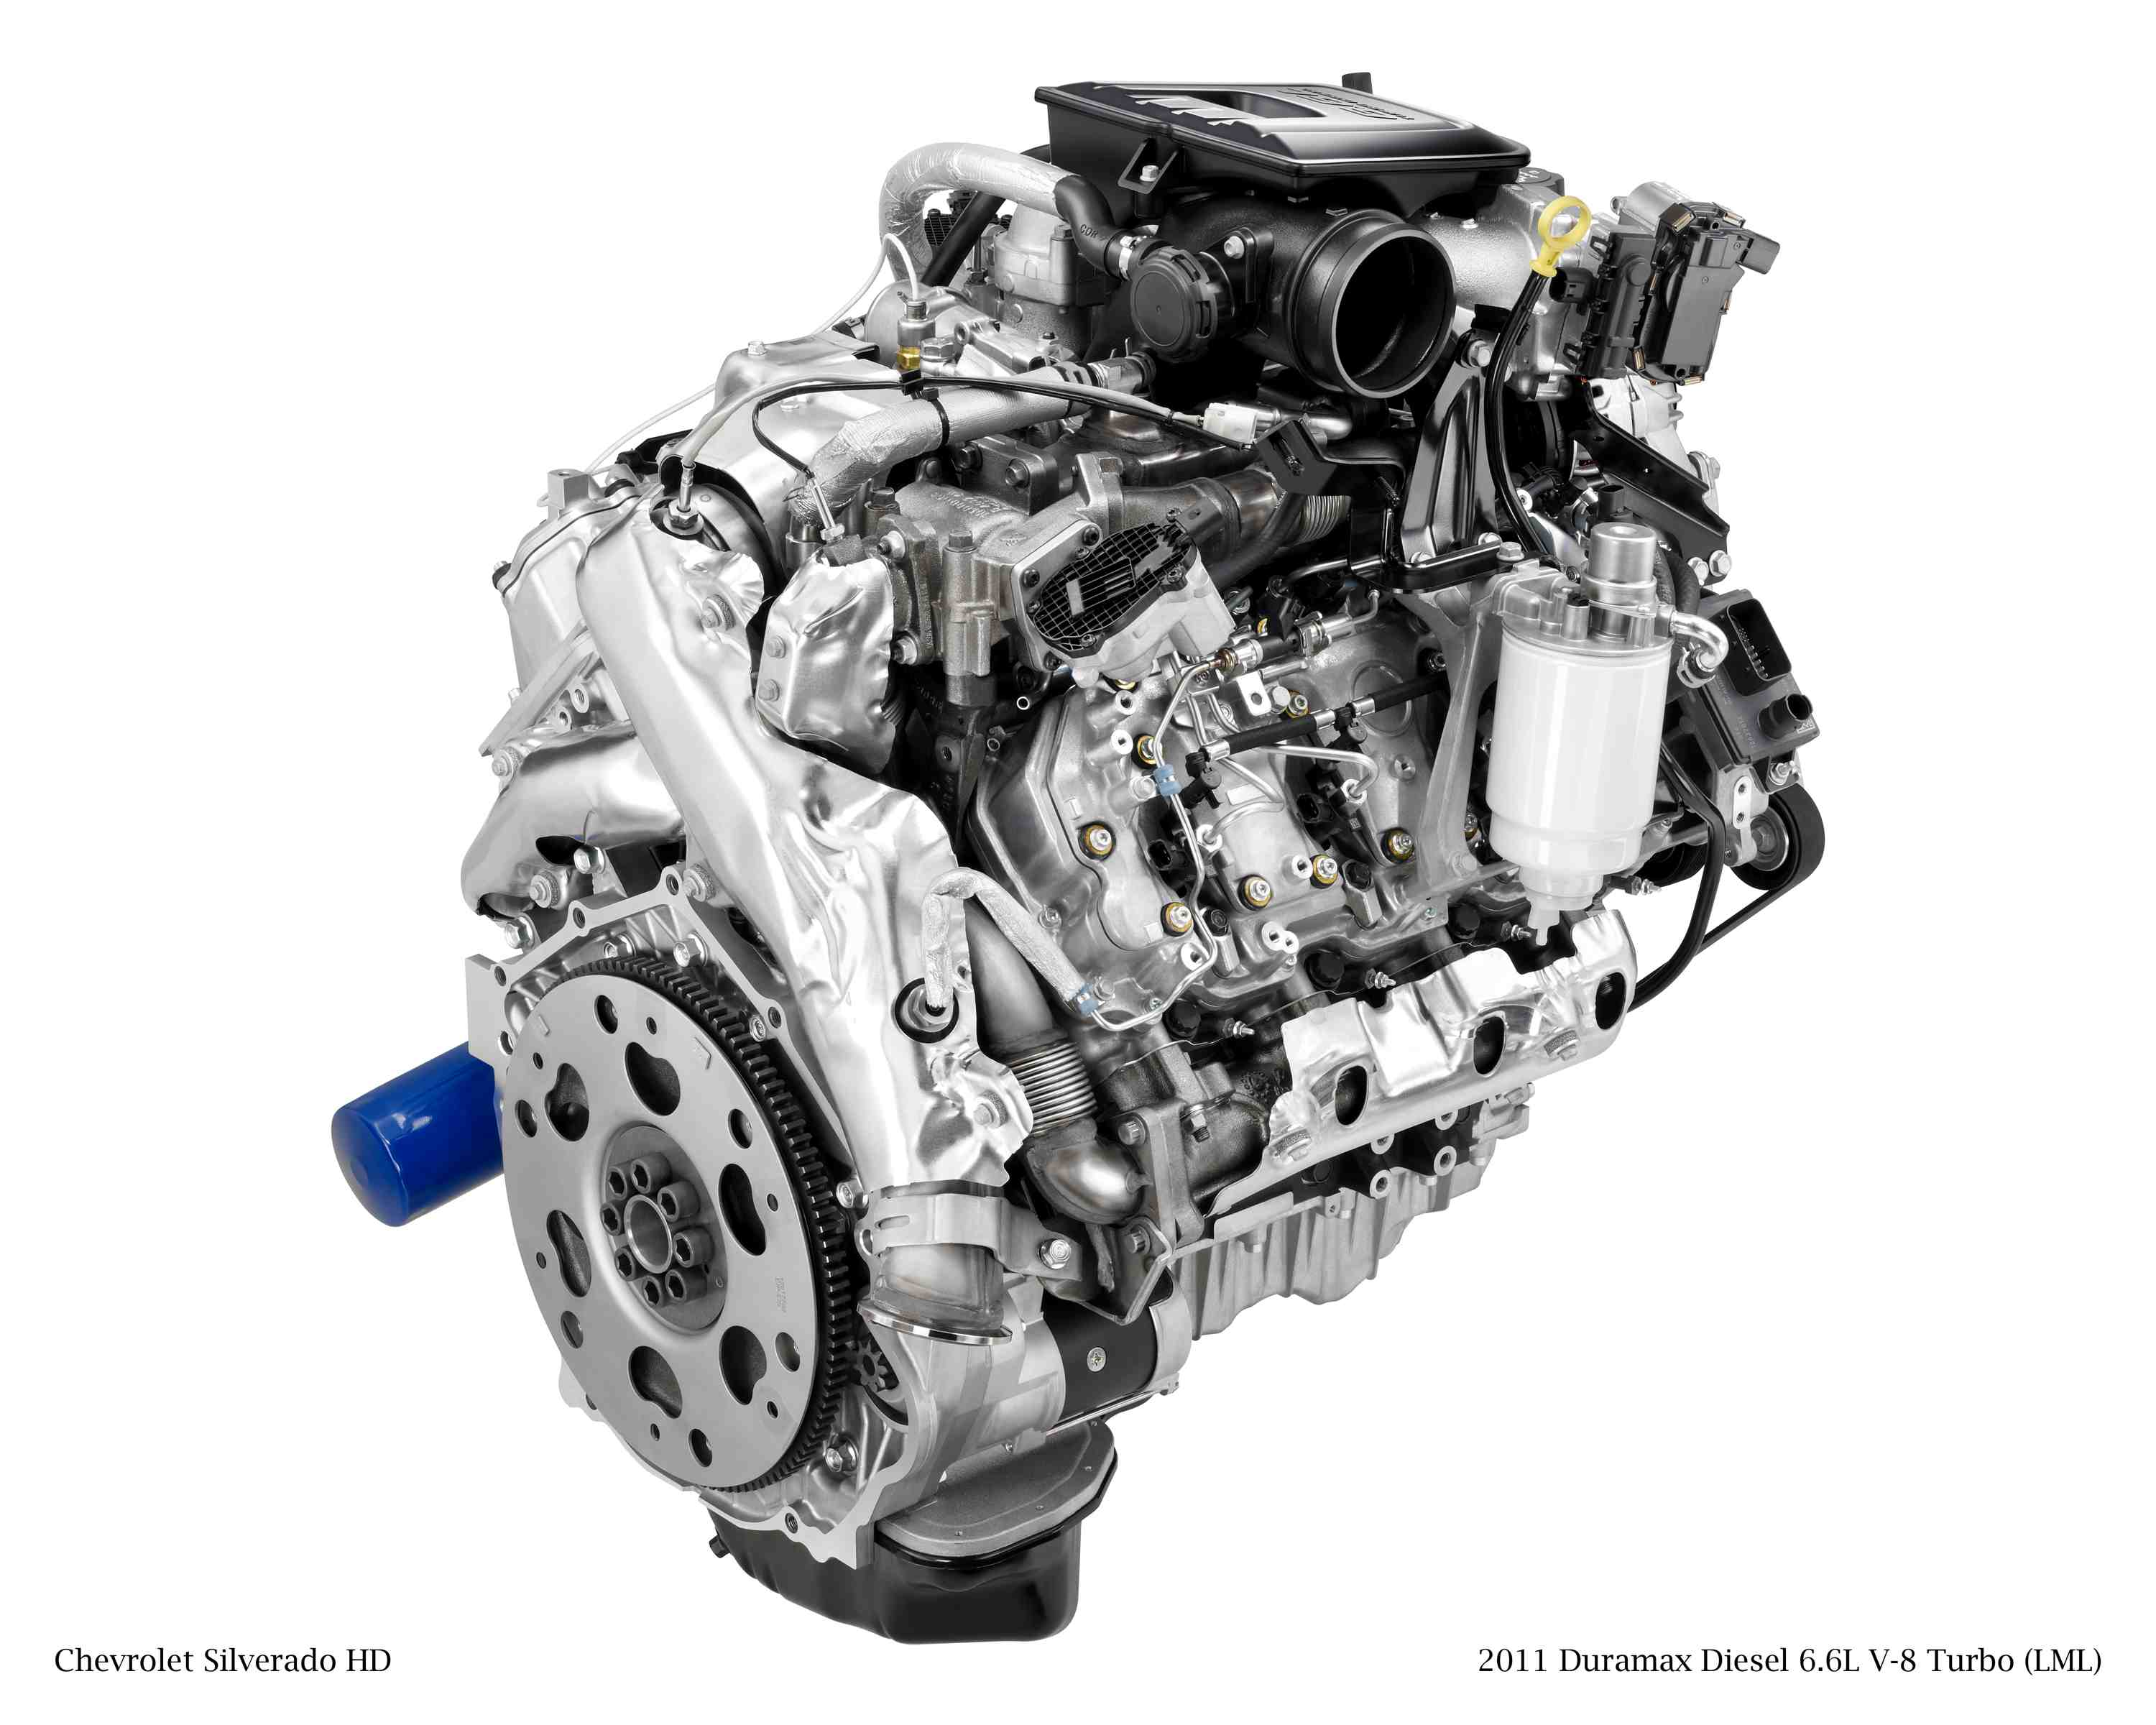 2011 Duramax Diesel 6.6L V-8 Turbo (LML) for Chevrolet Silverado HD